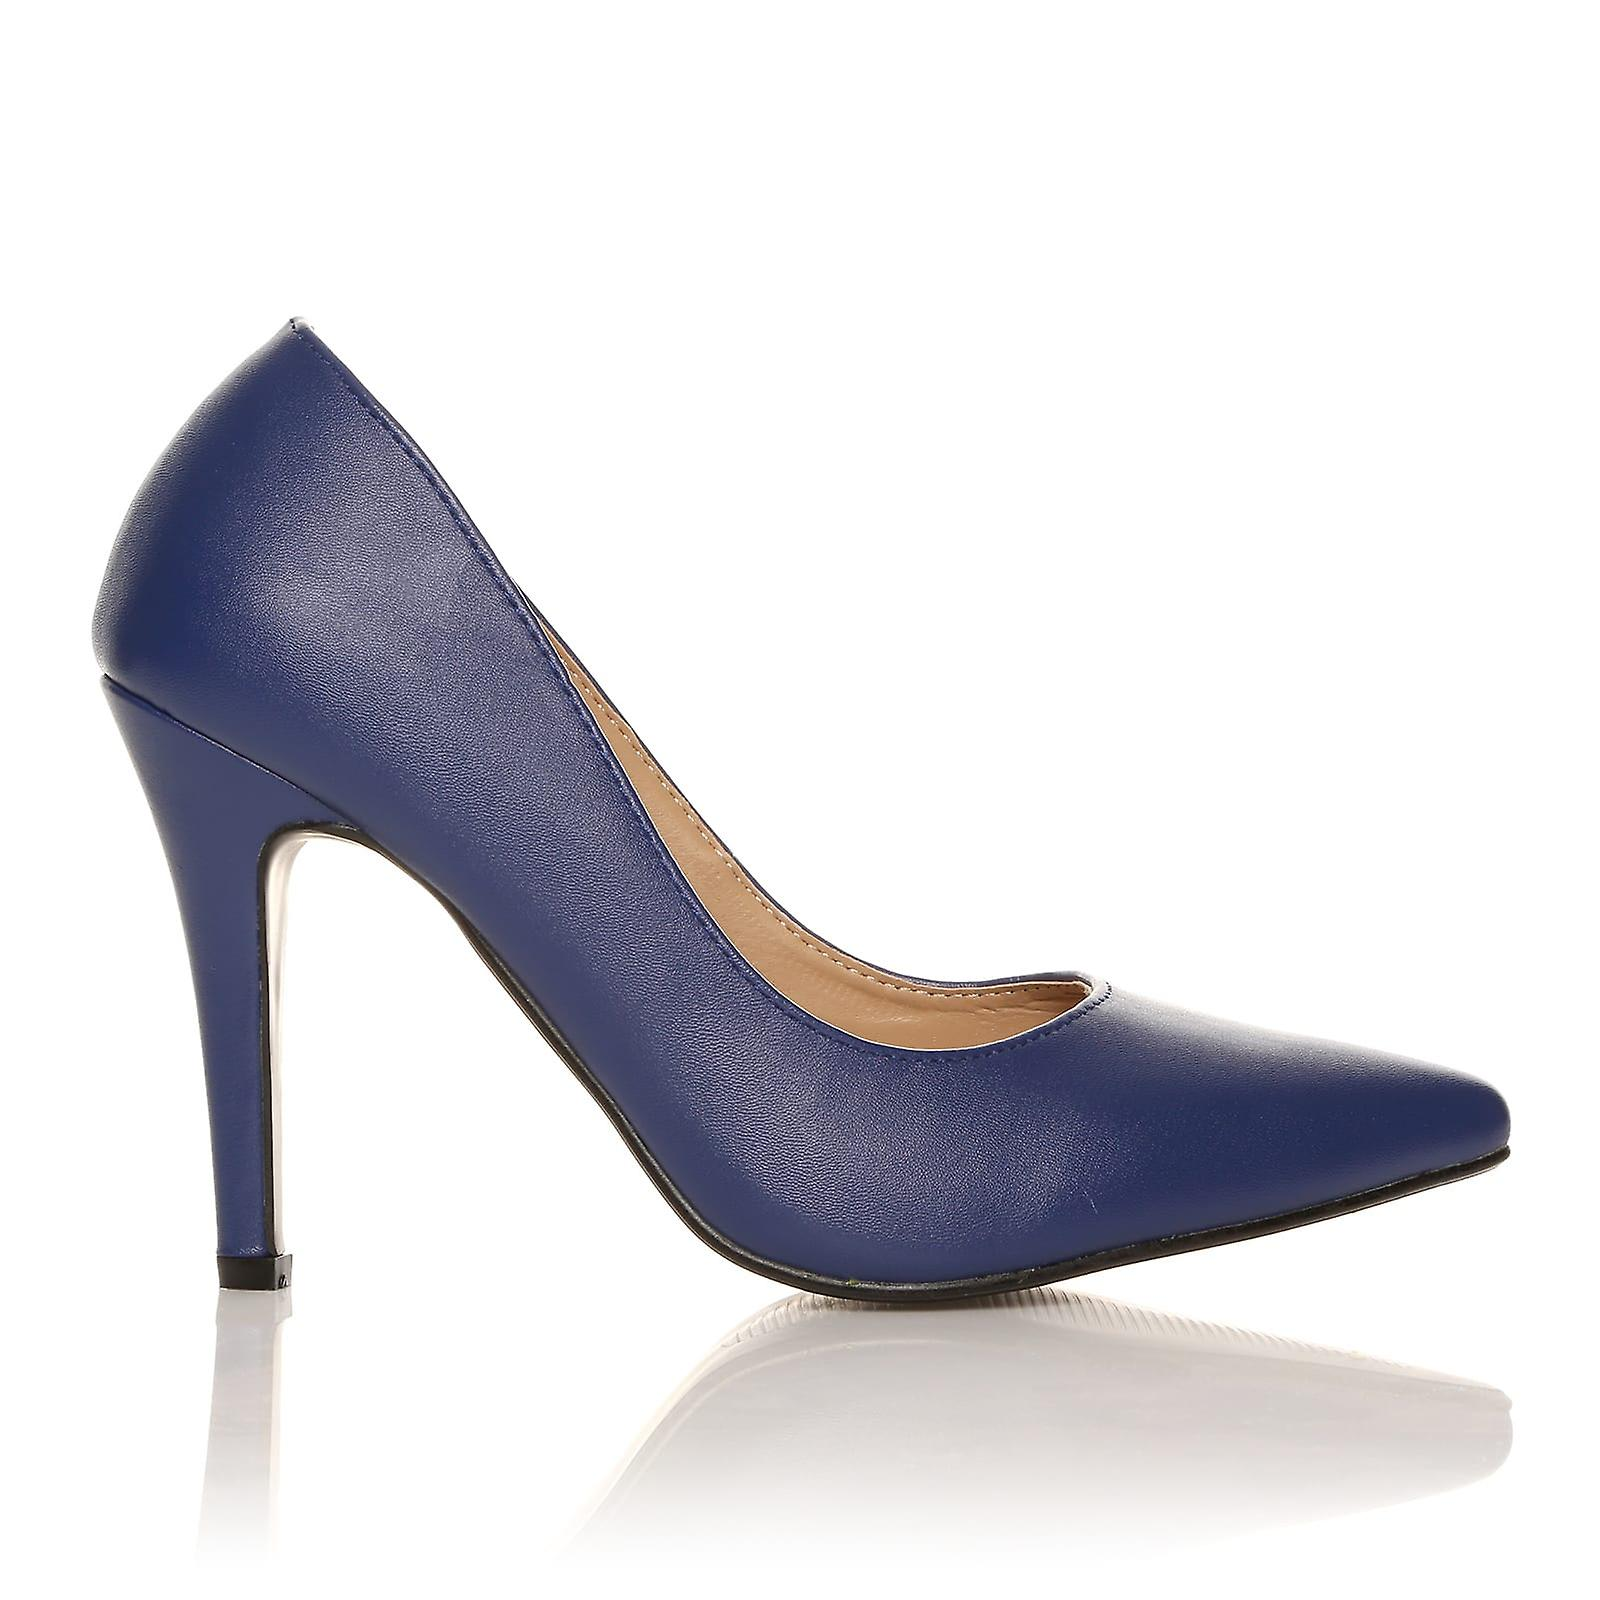 DARCY Navy PU Leather Stilleto Shoes High Heel Pointed Court Shoes Stilleto e4ce45